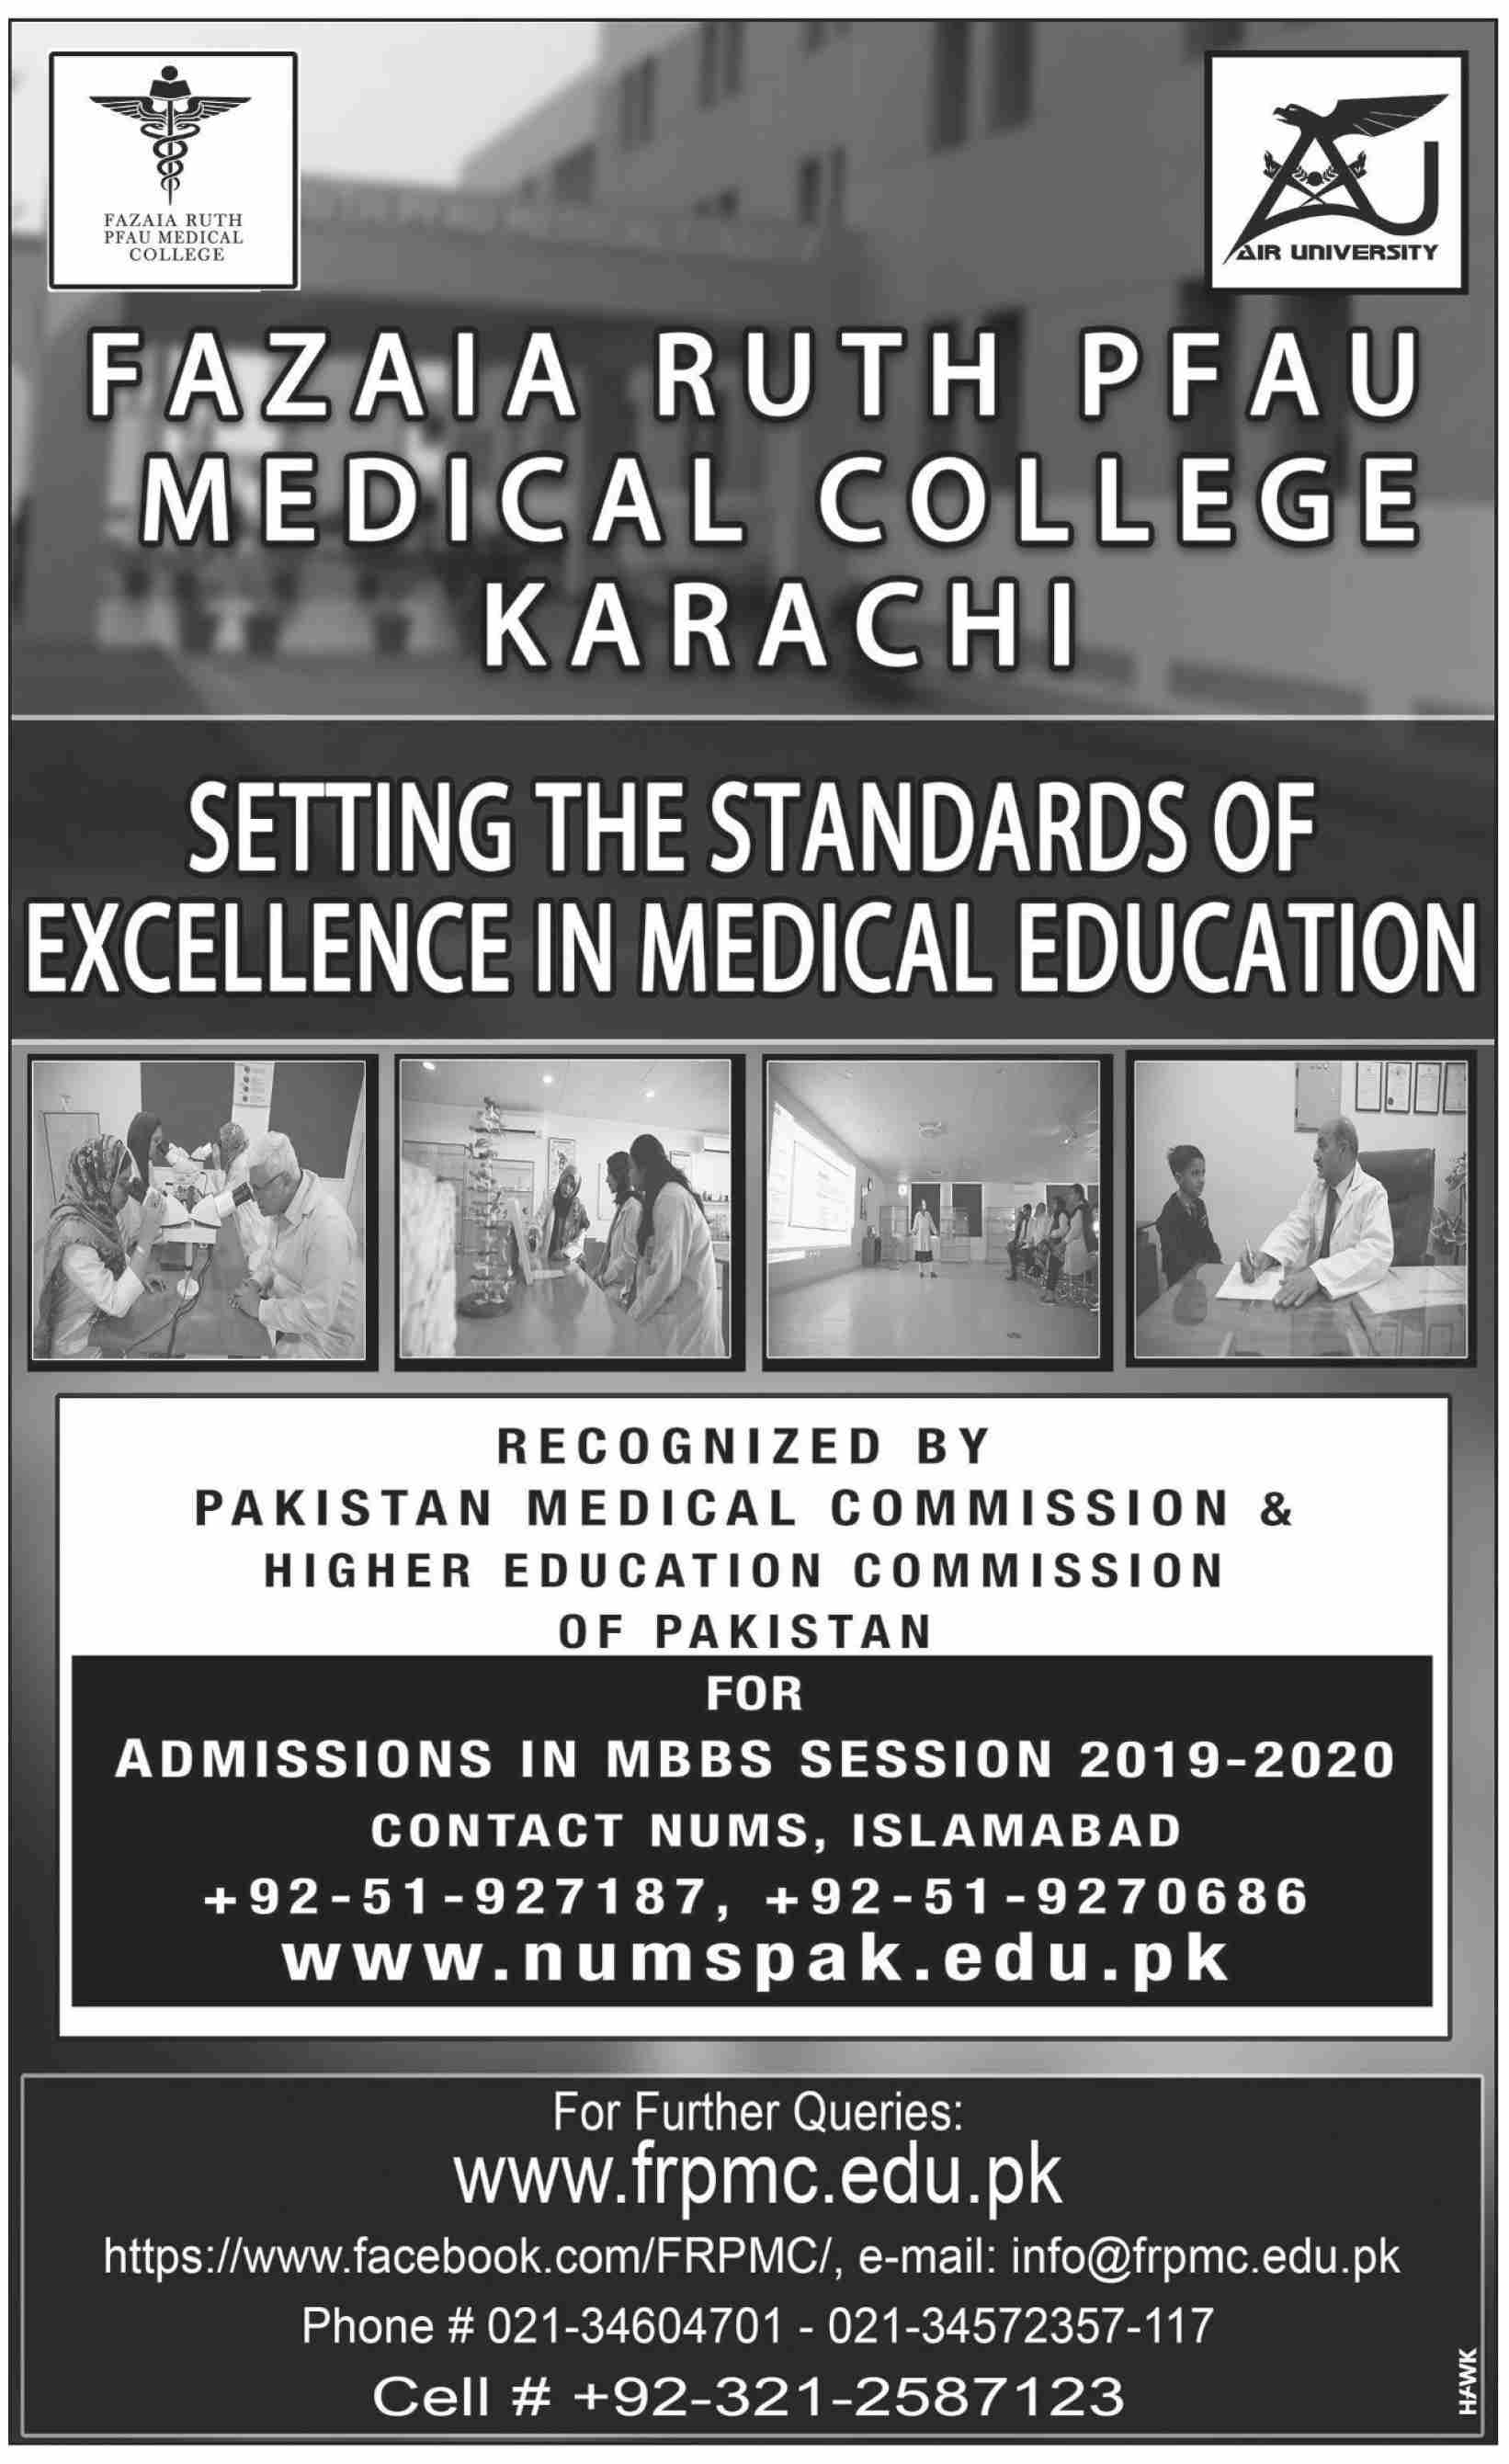 Fazaia Ruth Pfau Medical College Karachi Admissions.